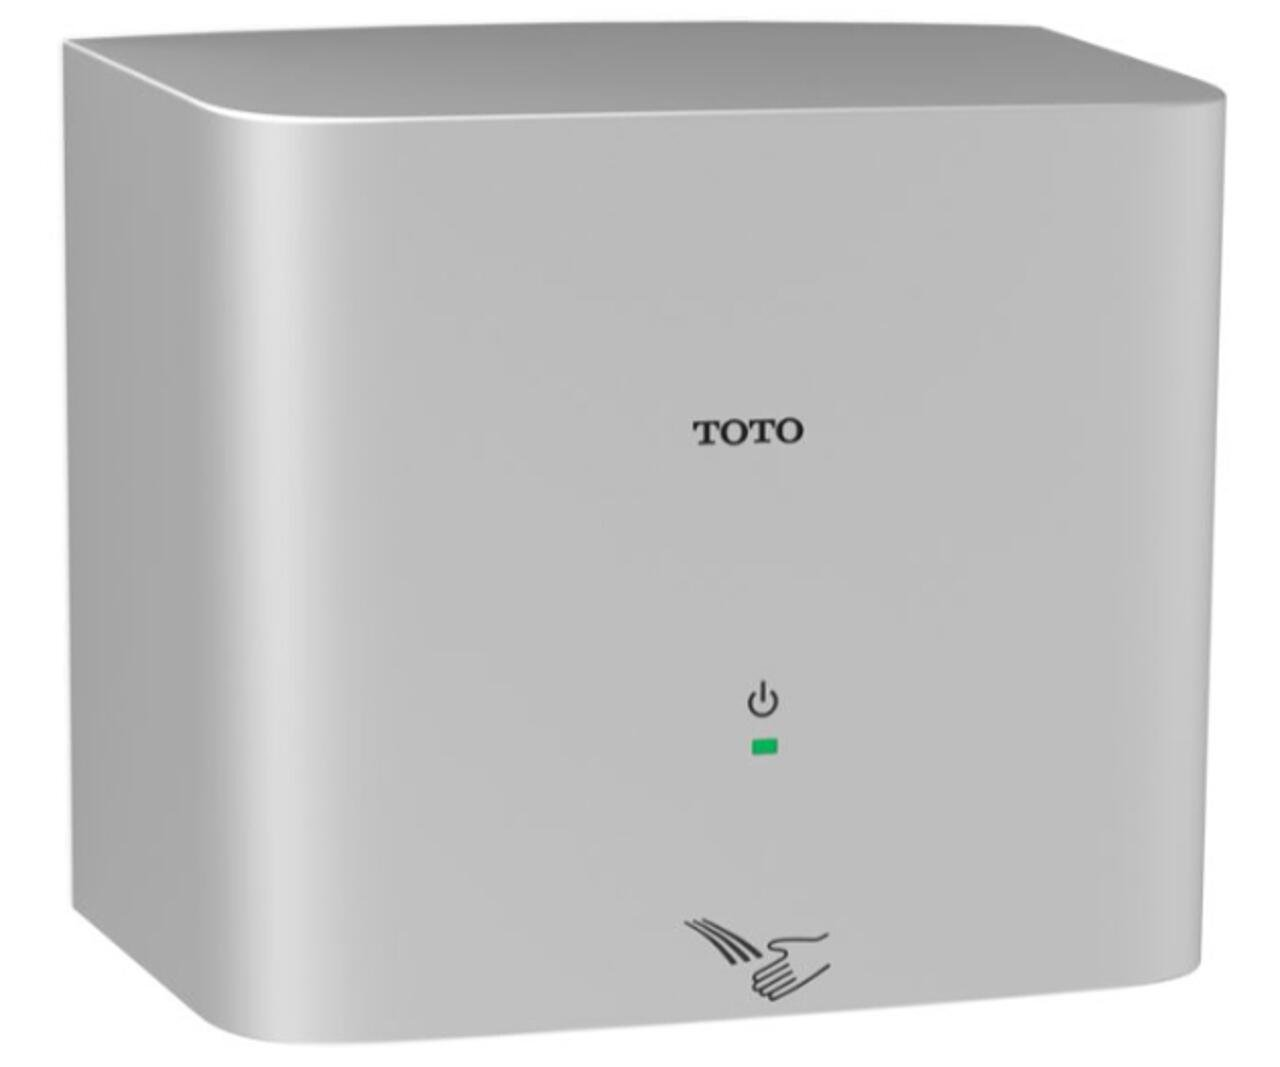 Amazon.com: Toto HDR130#SV Clean Dry Hand Dryer, 390-watt: Home ...